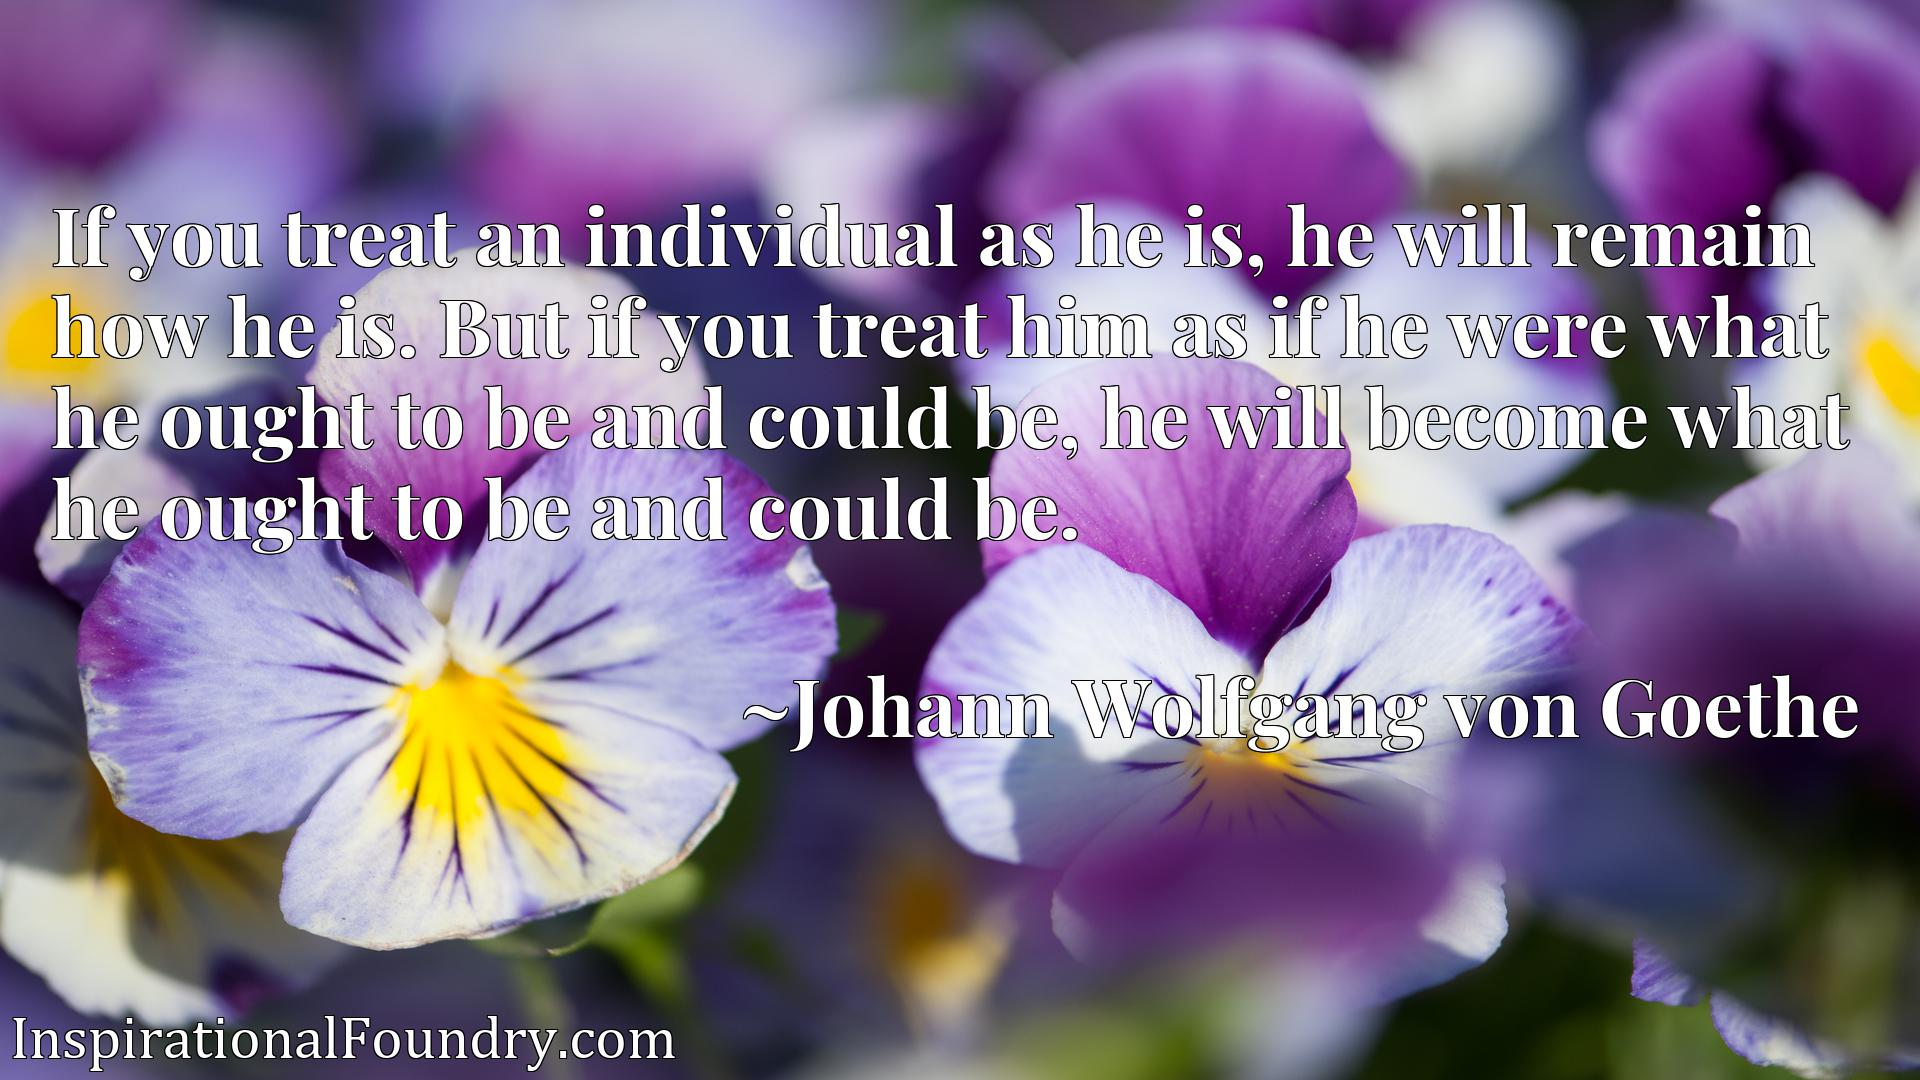 If you treat an individual as he is, he will remain how he is. But if you treat him as if he were what he ought to be and could be, he will become what he ought to be and could be.